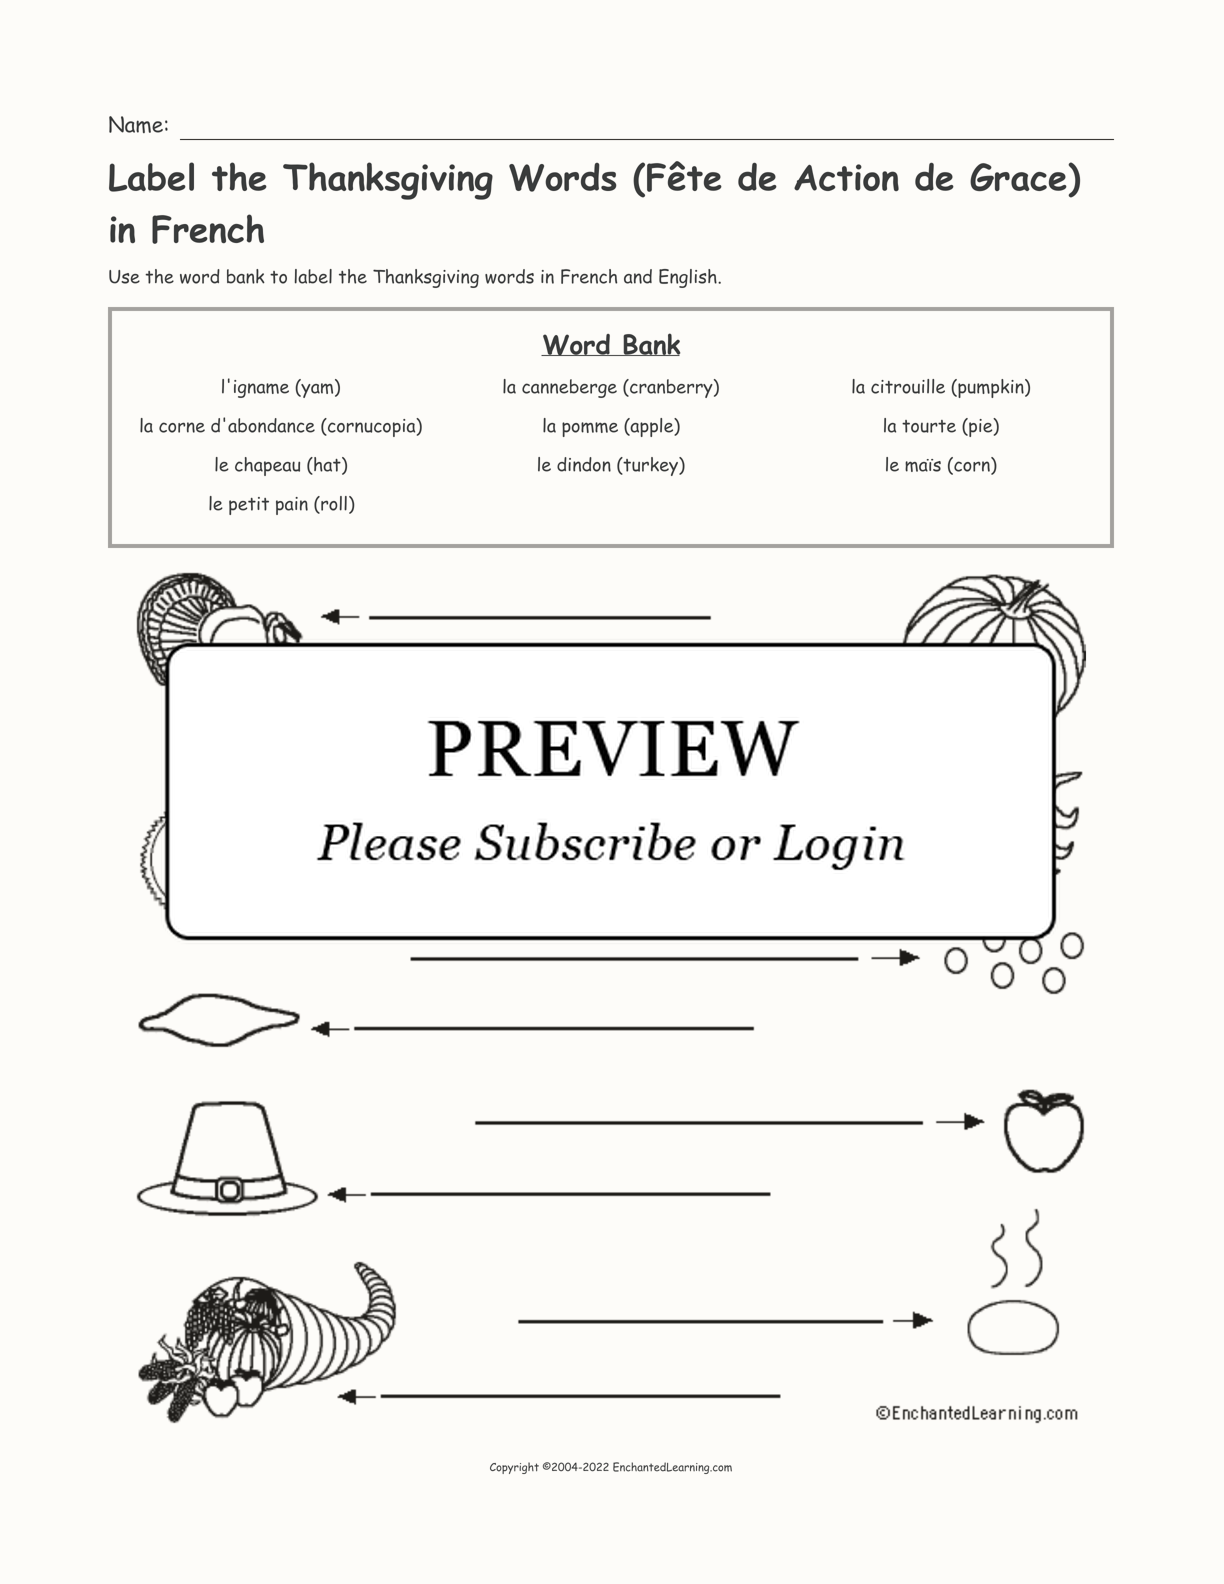 Label the Thanksgiving Words (Fête de Action de Grace) in French interactive worksheet page 1